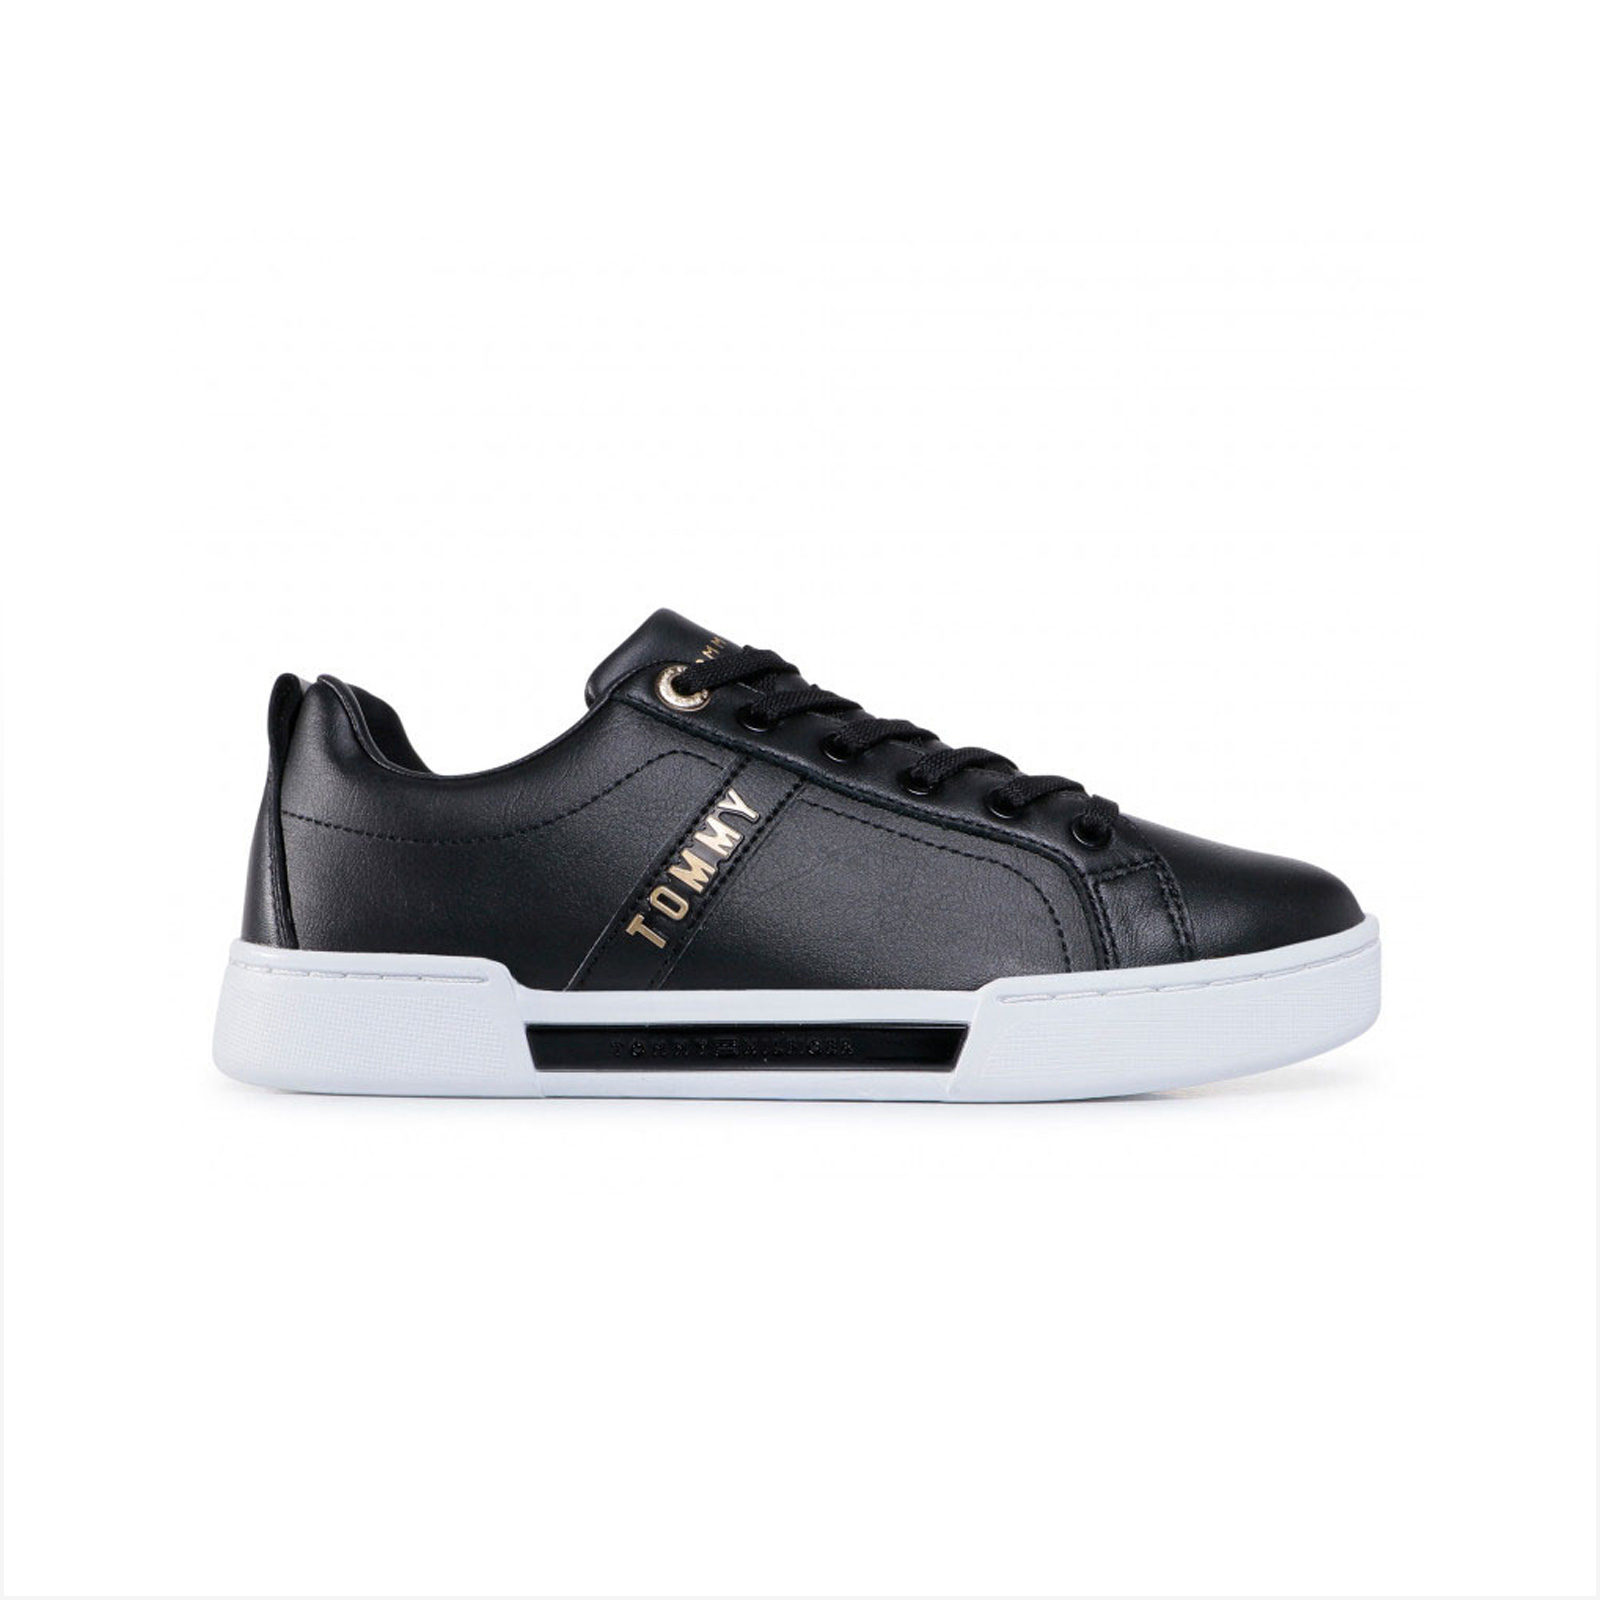 Tommy hilfiger - BRANDED OUTSOLE STRAPPY SNEAKER - BLACK